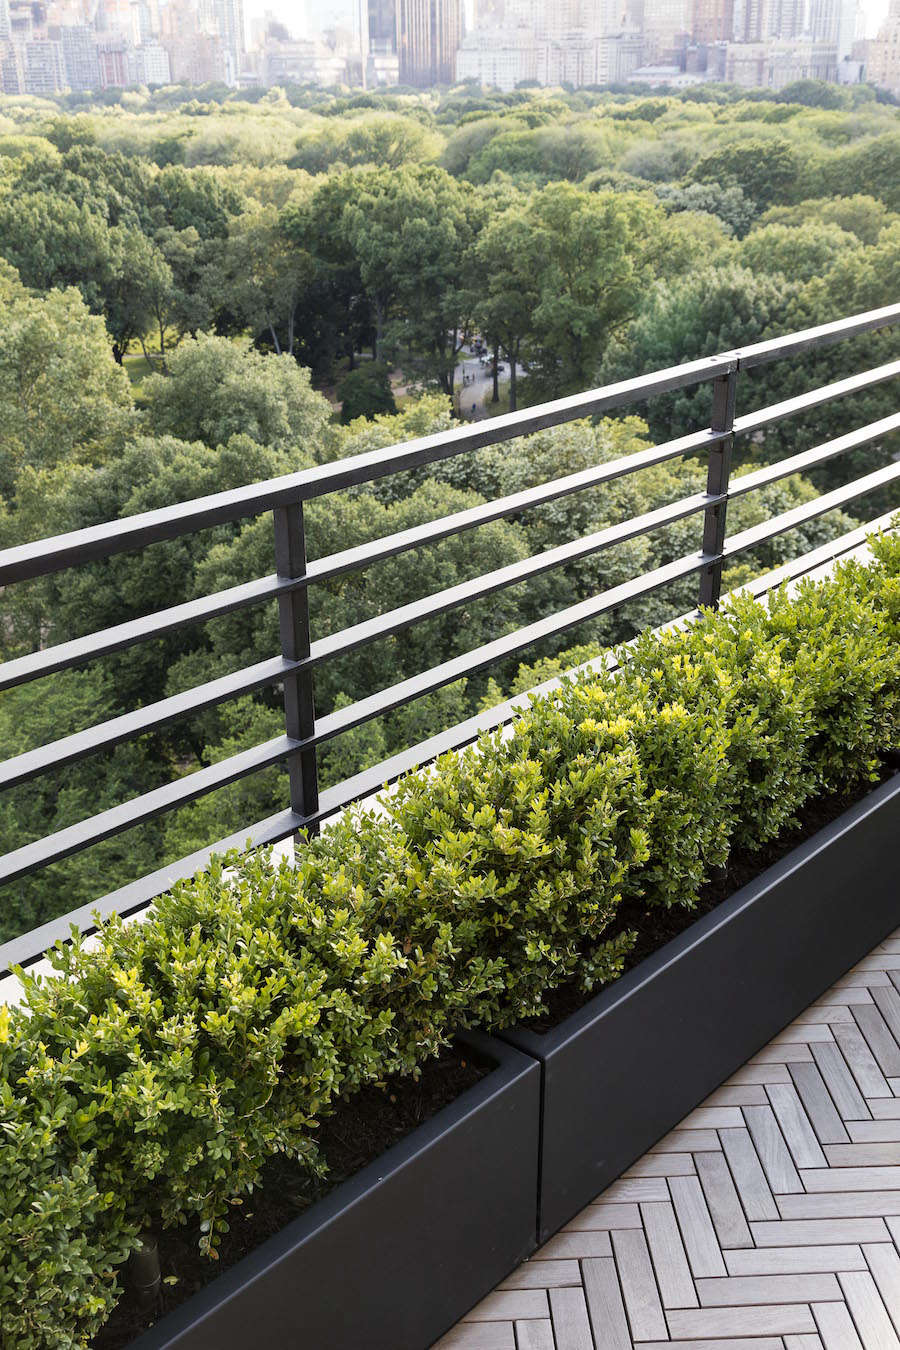 The unadorned powder coated planters were chosen for their light weight and durability and were custom built.